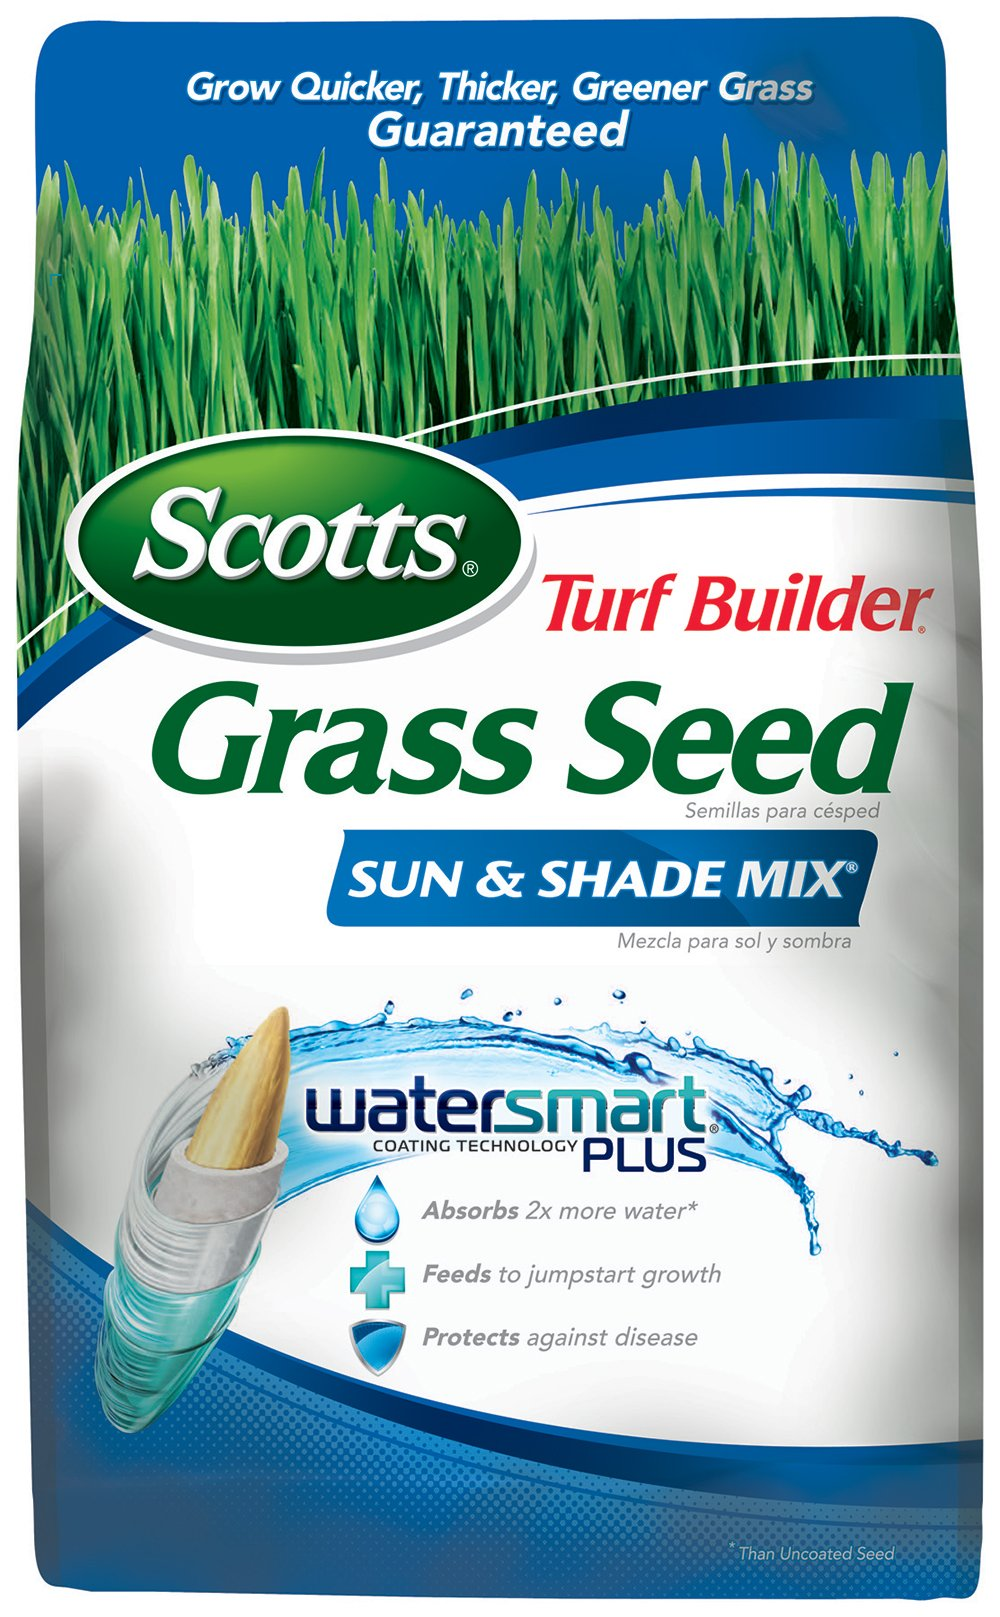 Scotts 18225 Turf Builder Sun and Shade Grass Seed Mix (6 Pack), 3 lb